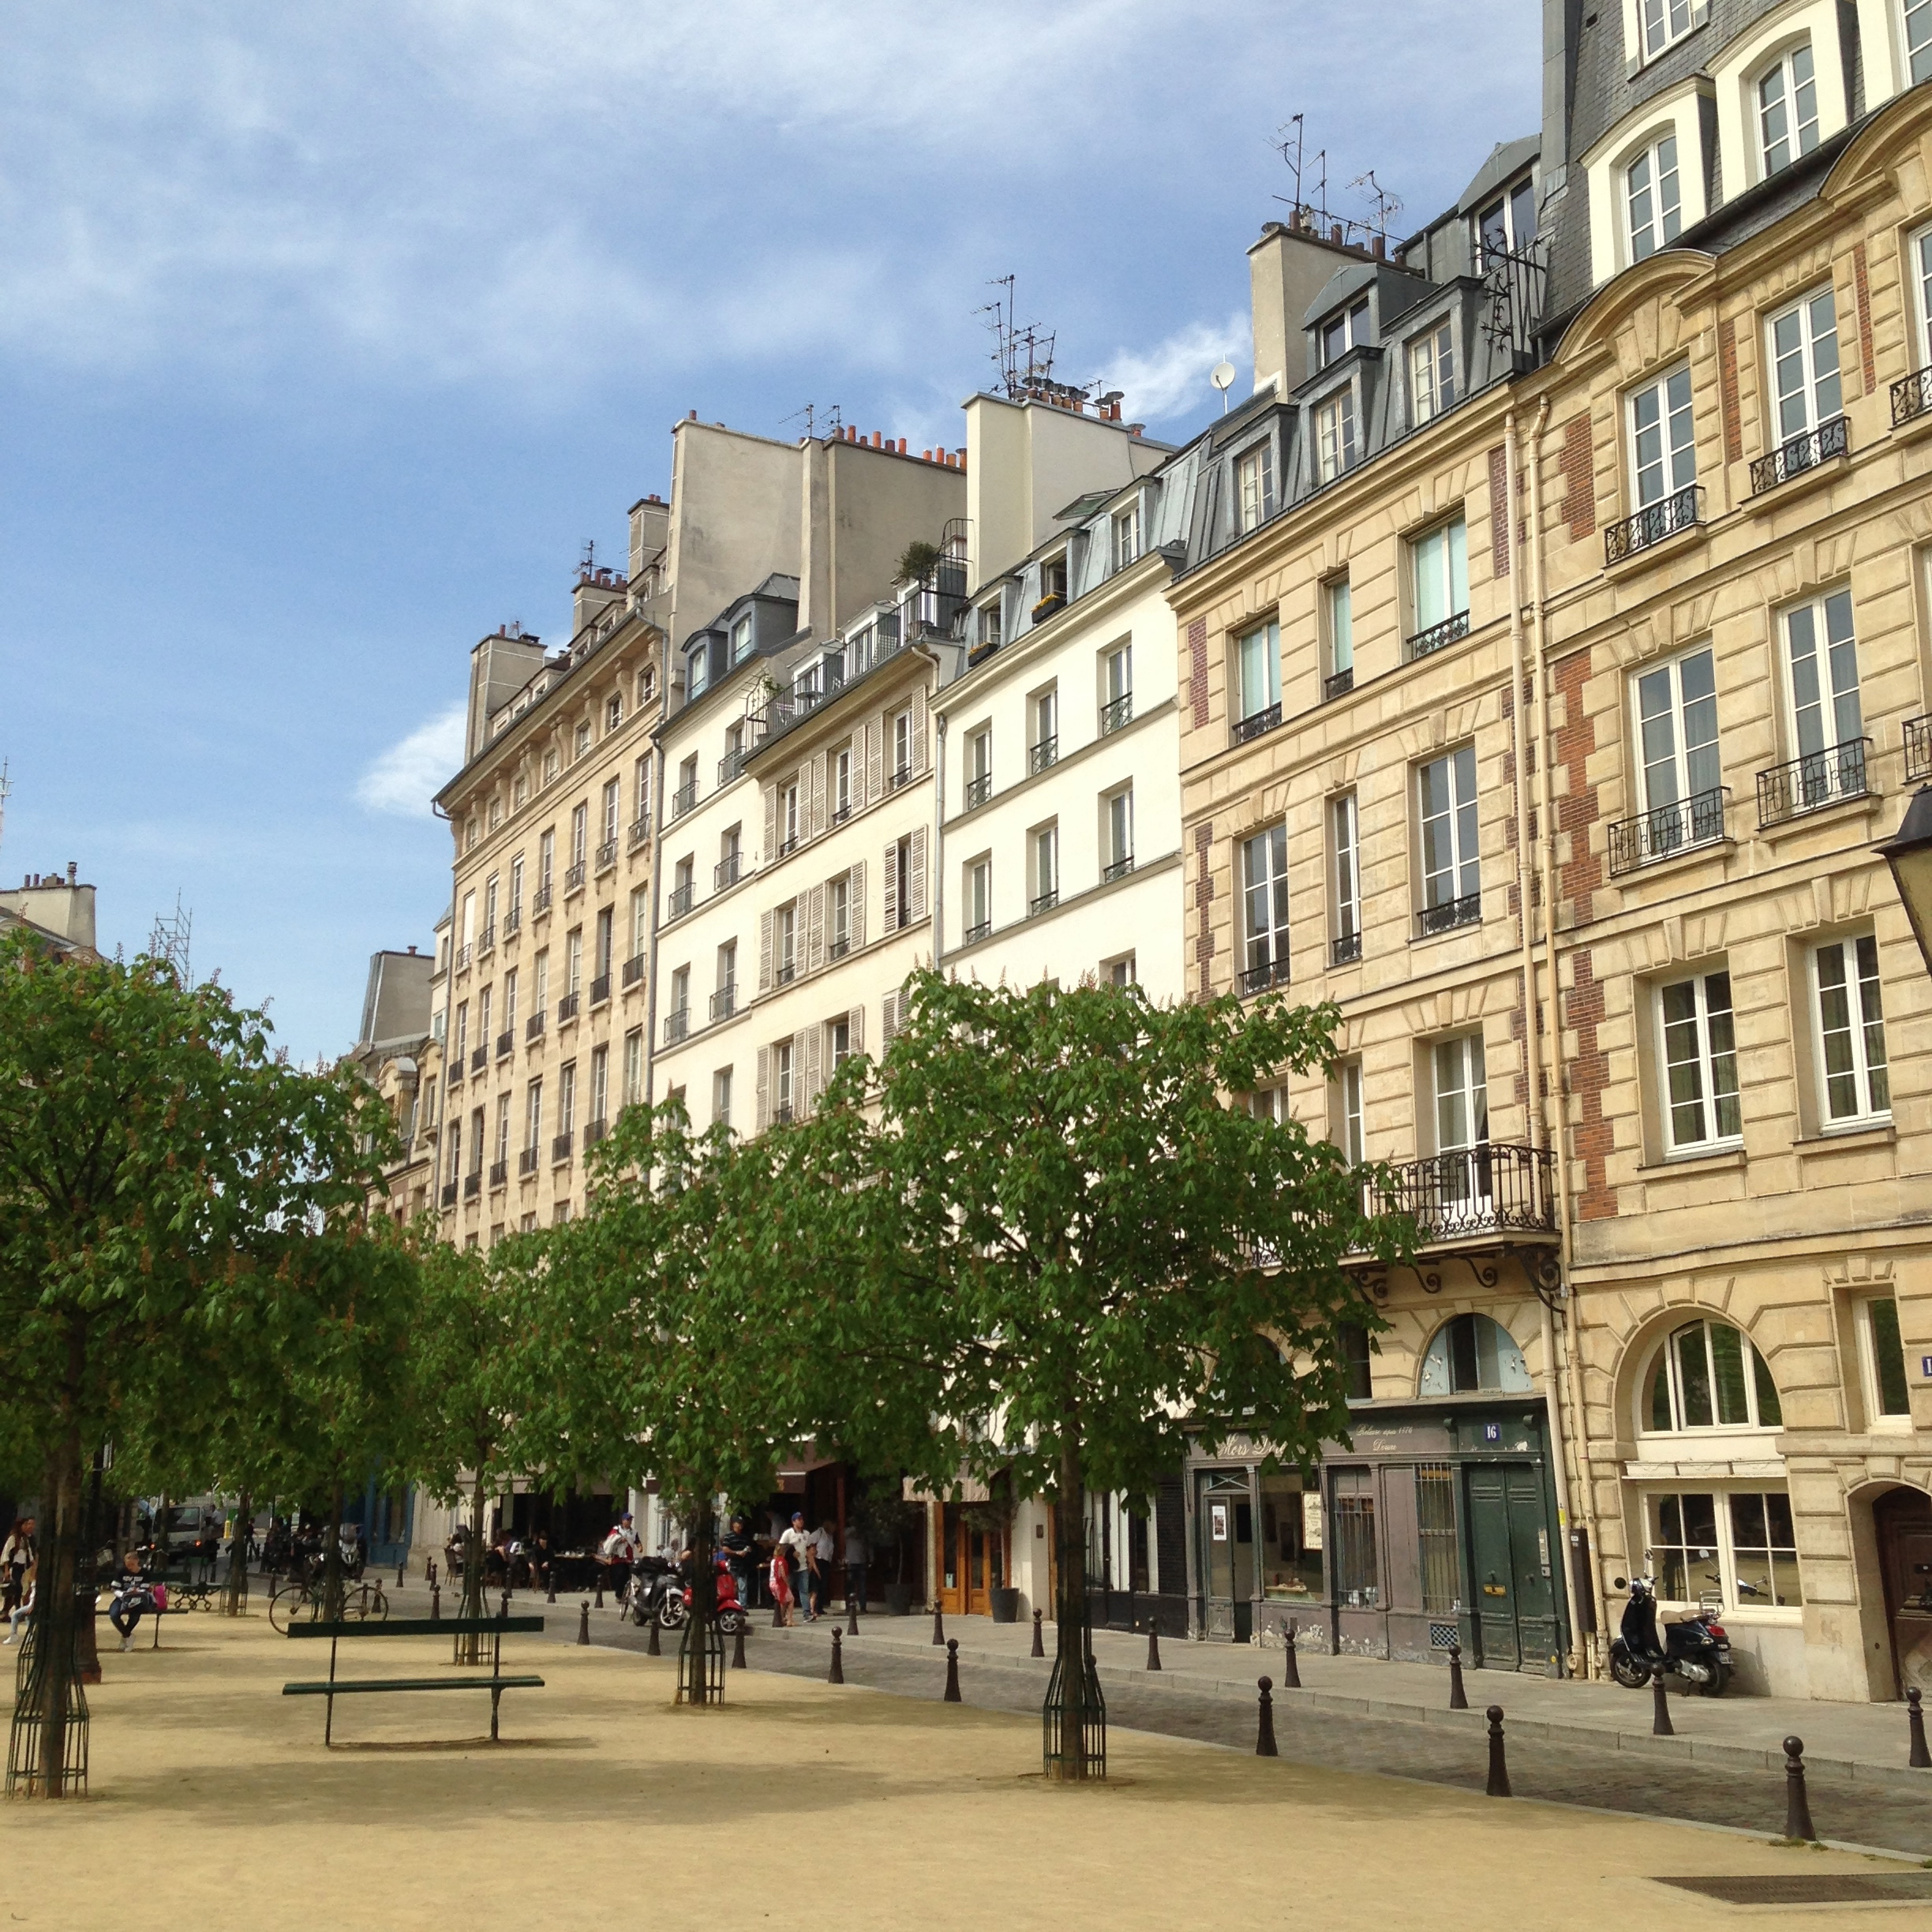 RESTAURANTS 1. Place Dauphine